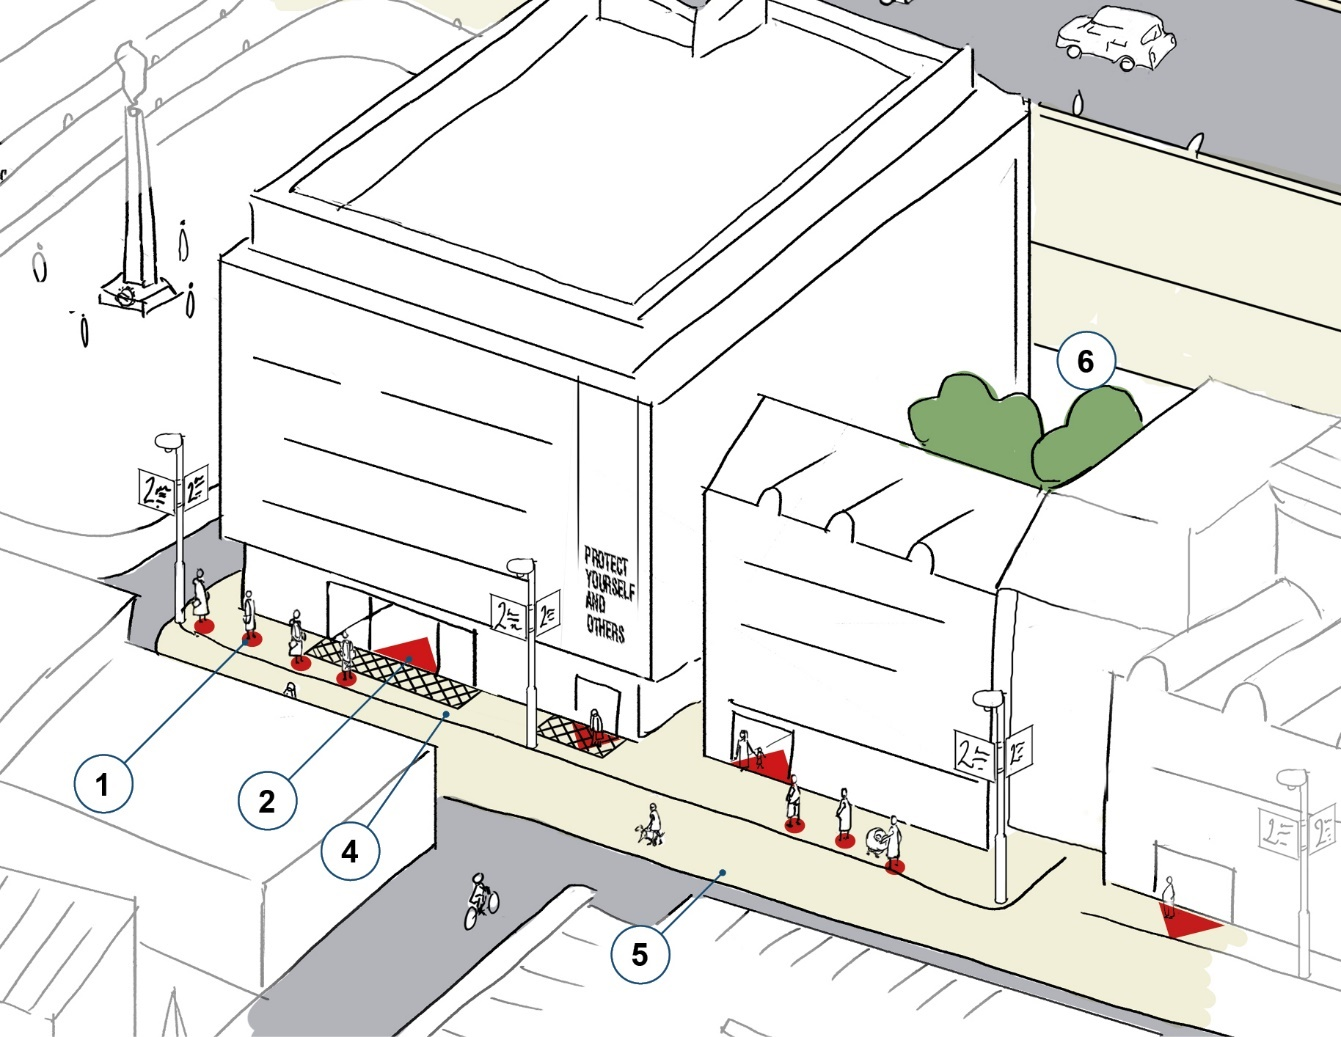 Figure 21: Social distancing interventions in areas around commercial buildings